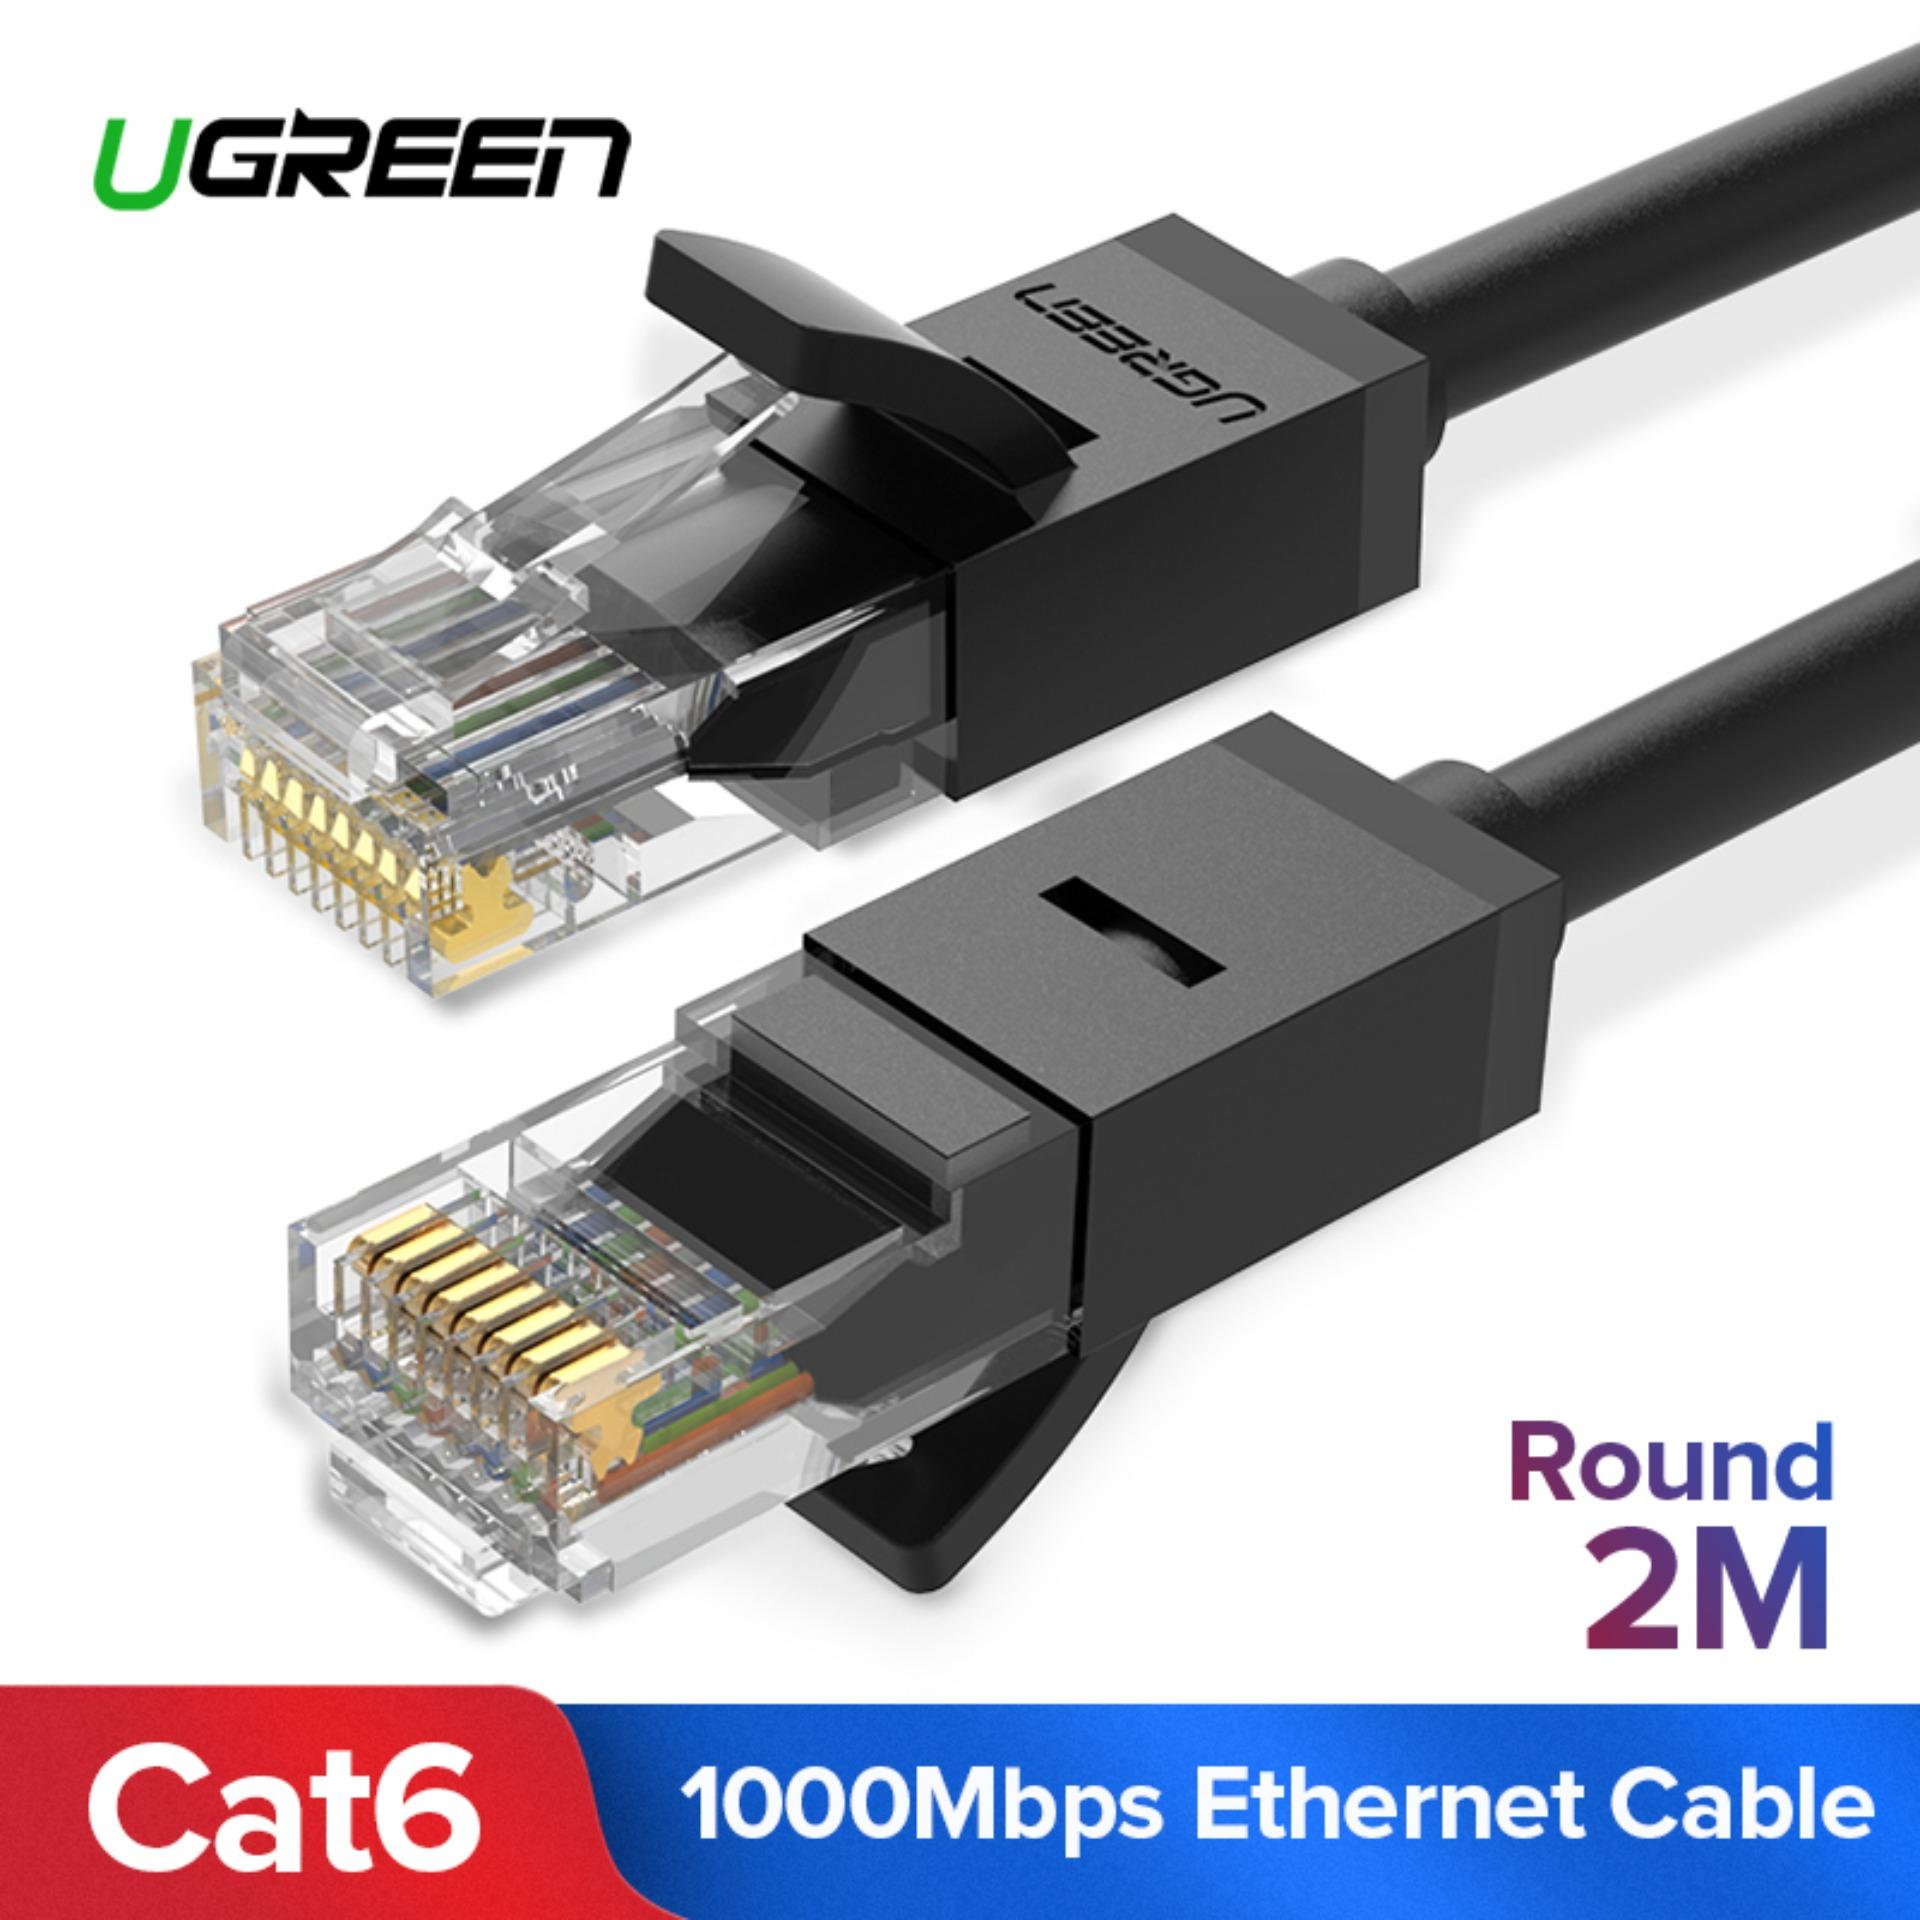 UGREEN 2Meter Cat6 Ethernet Patch Round Cable Gigabit RJ45 Network Wire Lan Cable Plug Connector for Mac, Computer, PC, Router, Modem, Printer, XBOX, PS4, PS3, PSP (Black)-Intl